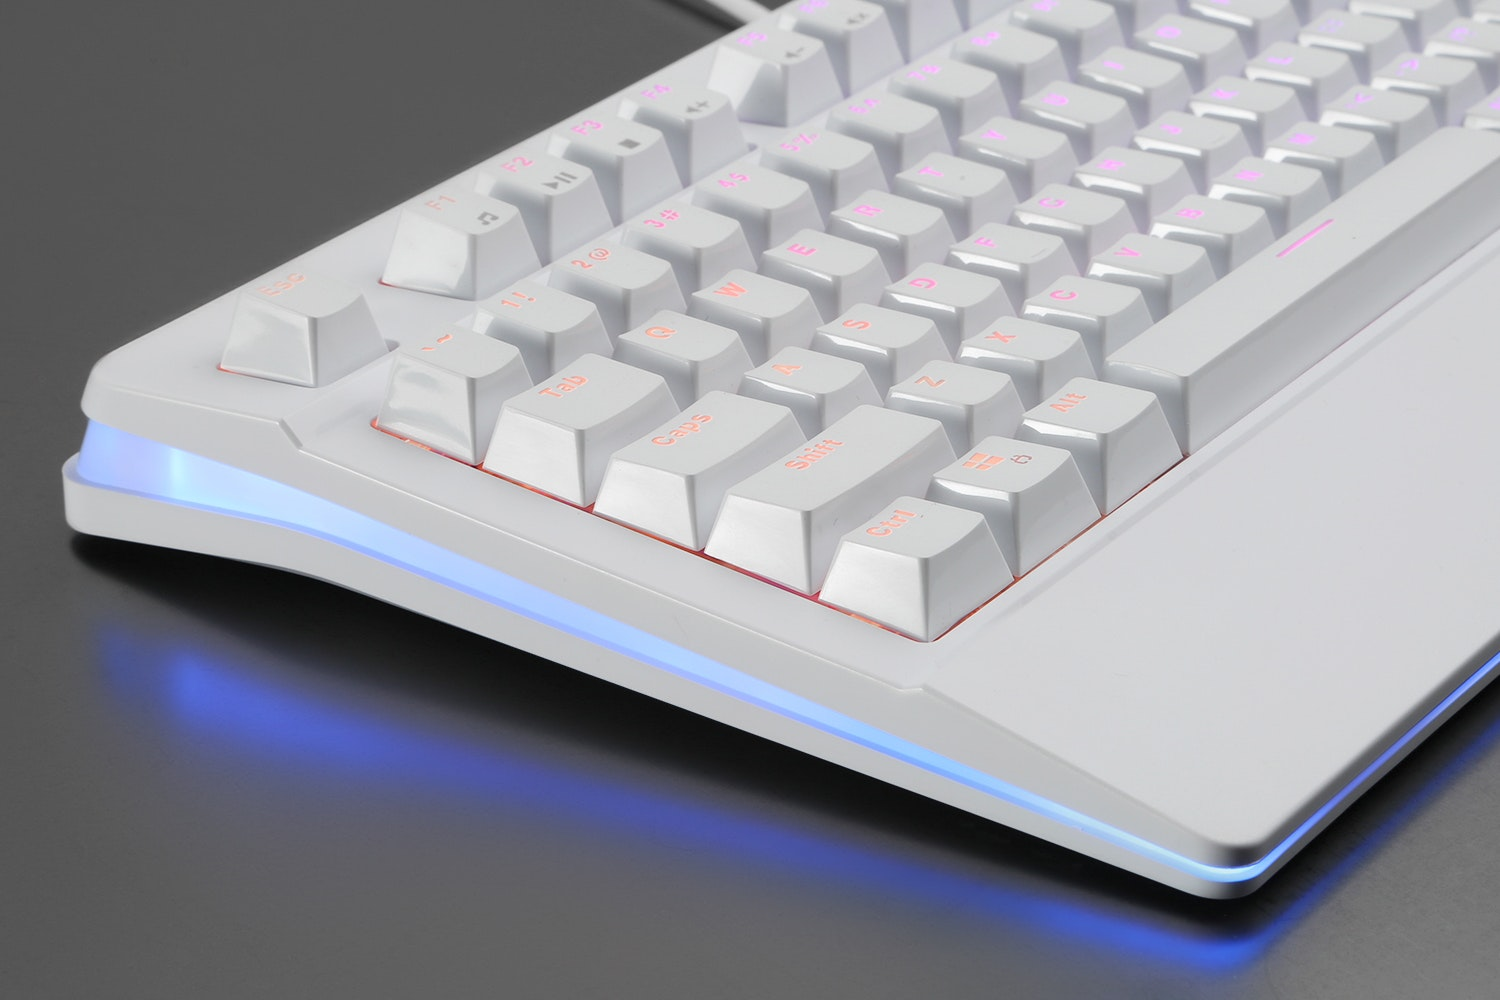 Royal Kludge Pro 104 RGB Mechanical Keyboard